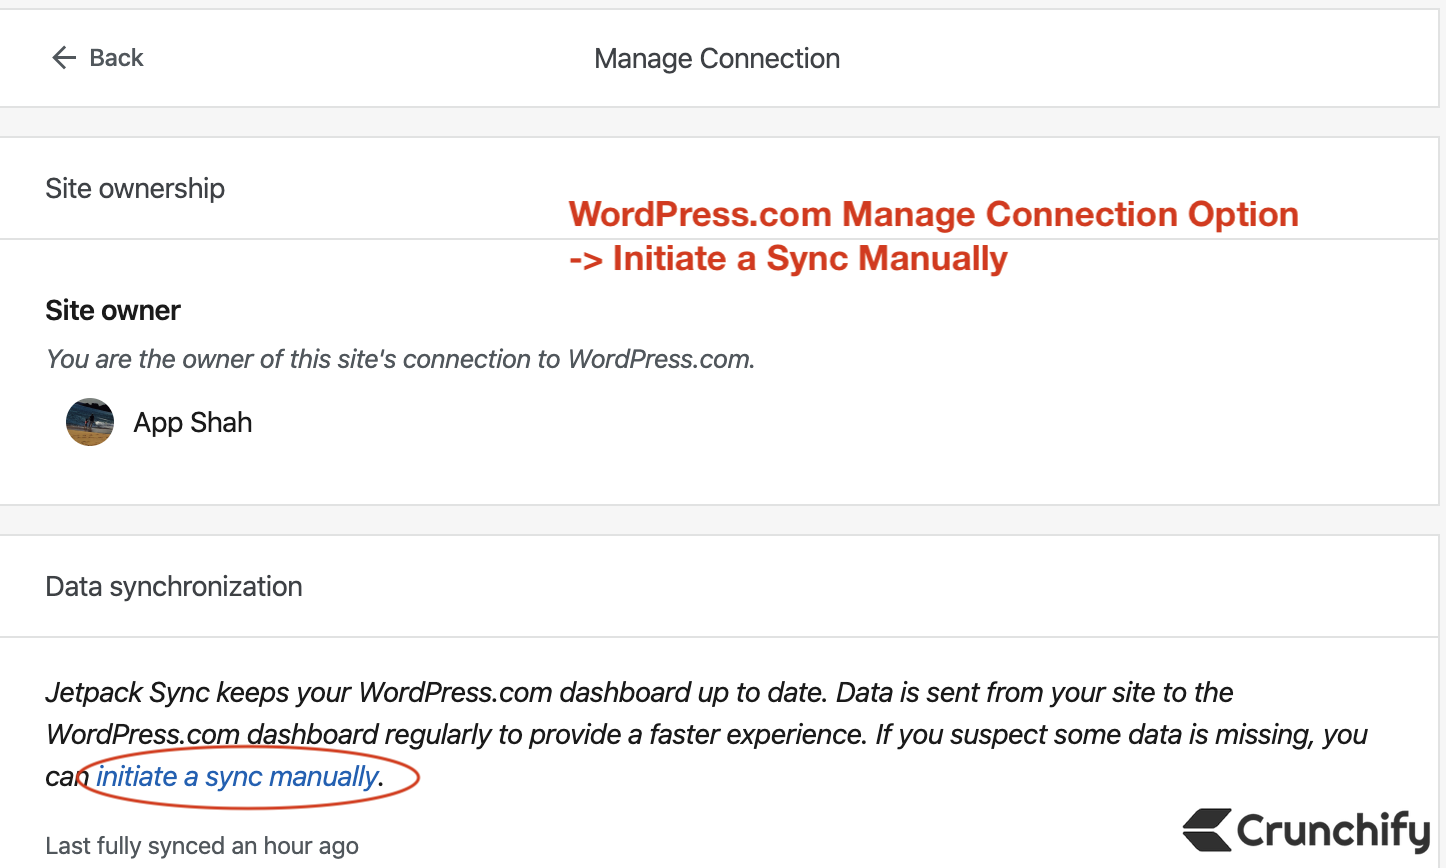 WordPress.com Manage Connection Option - Initiate a Sync Manually